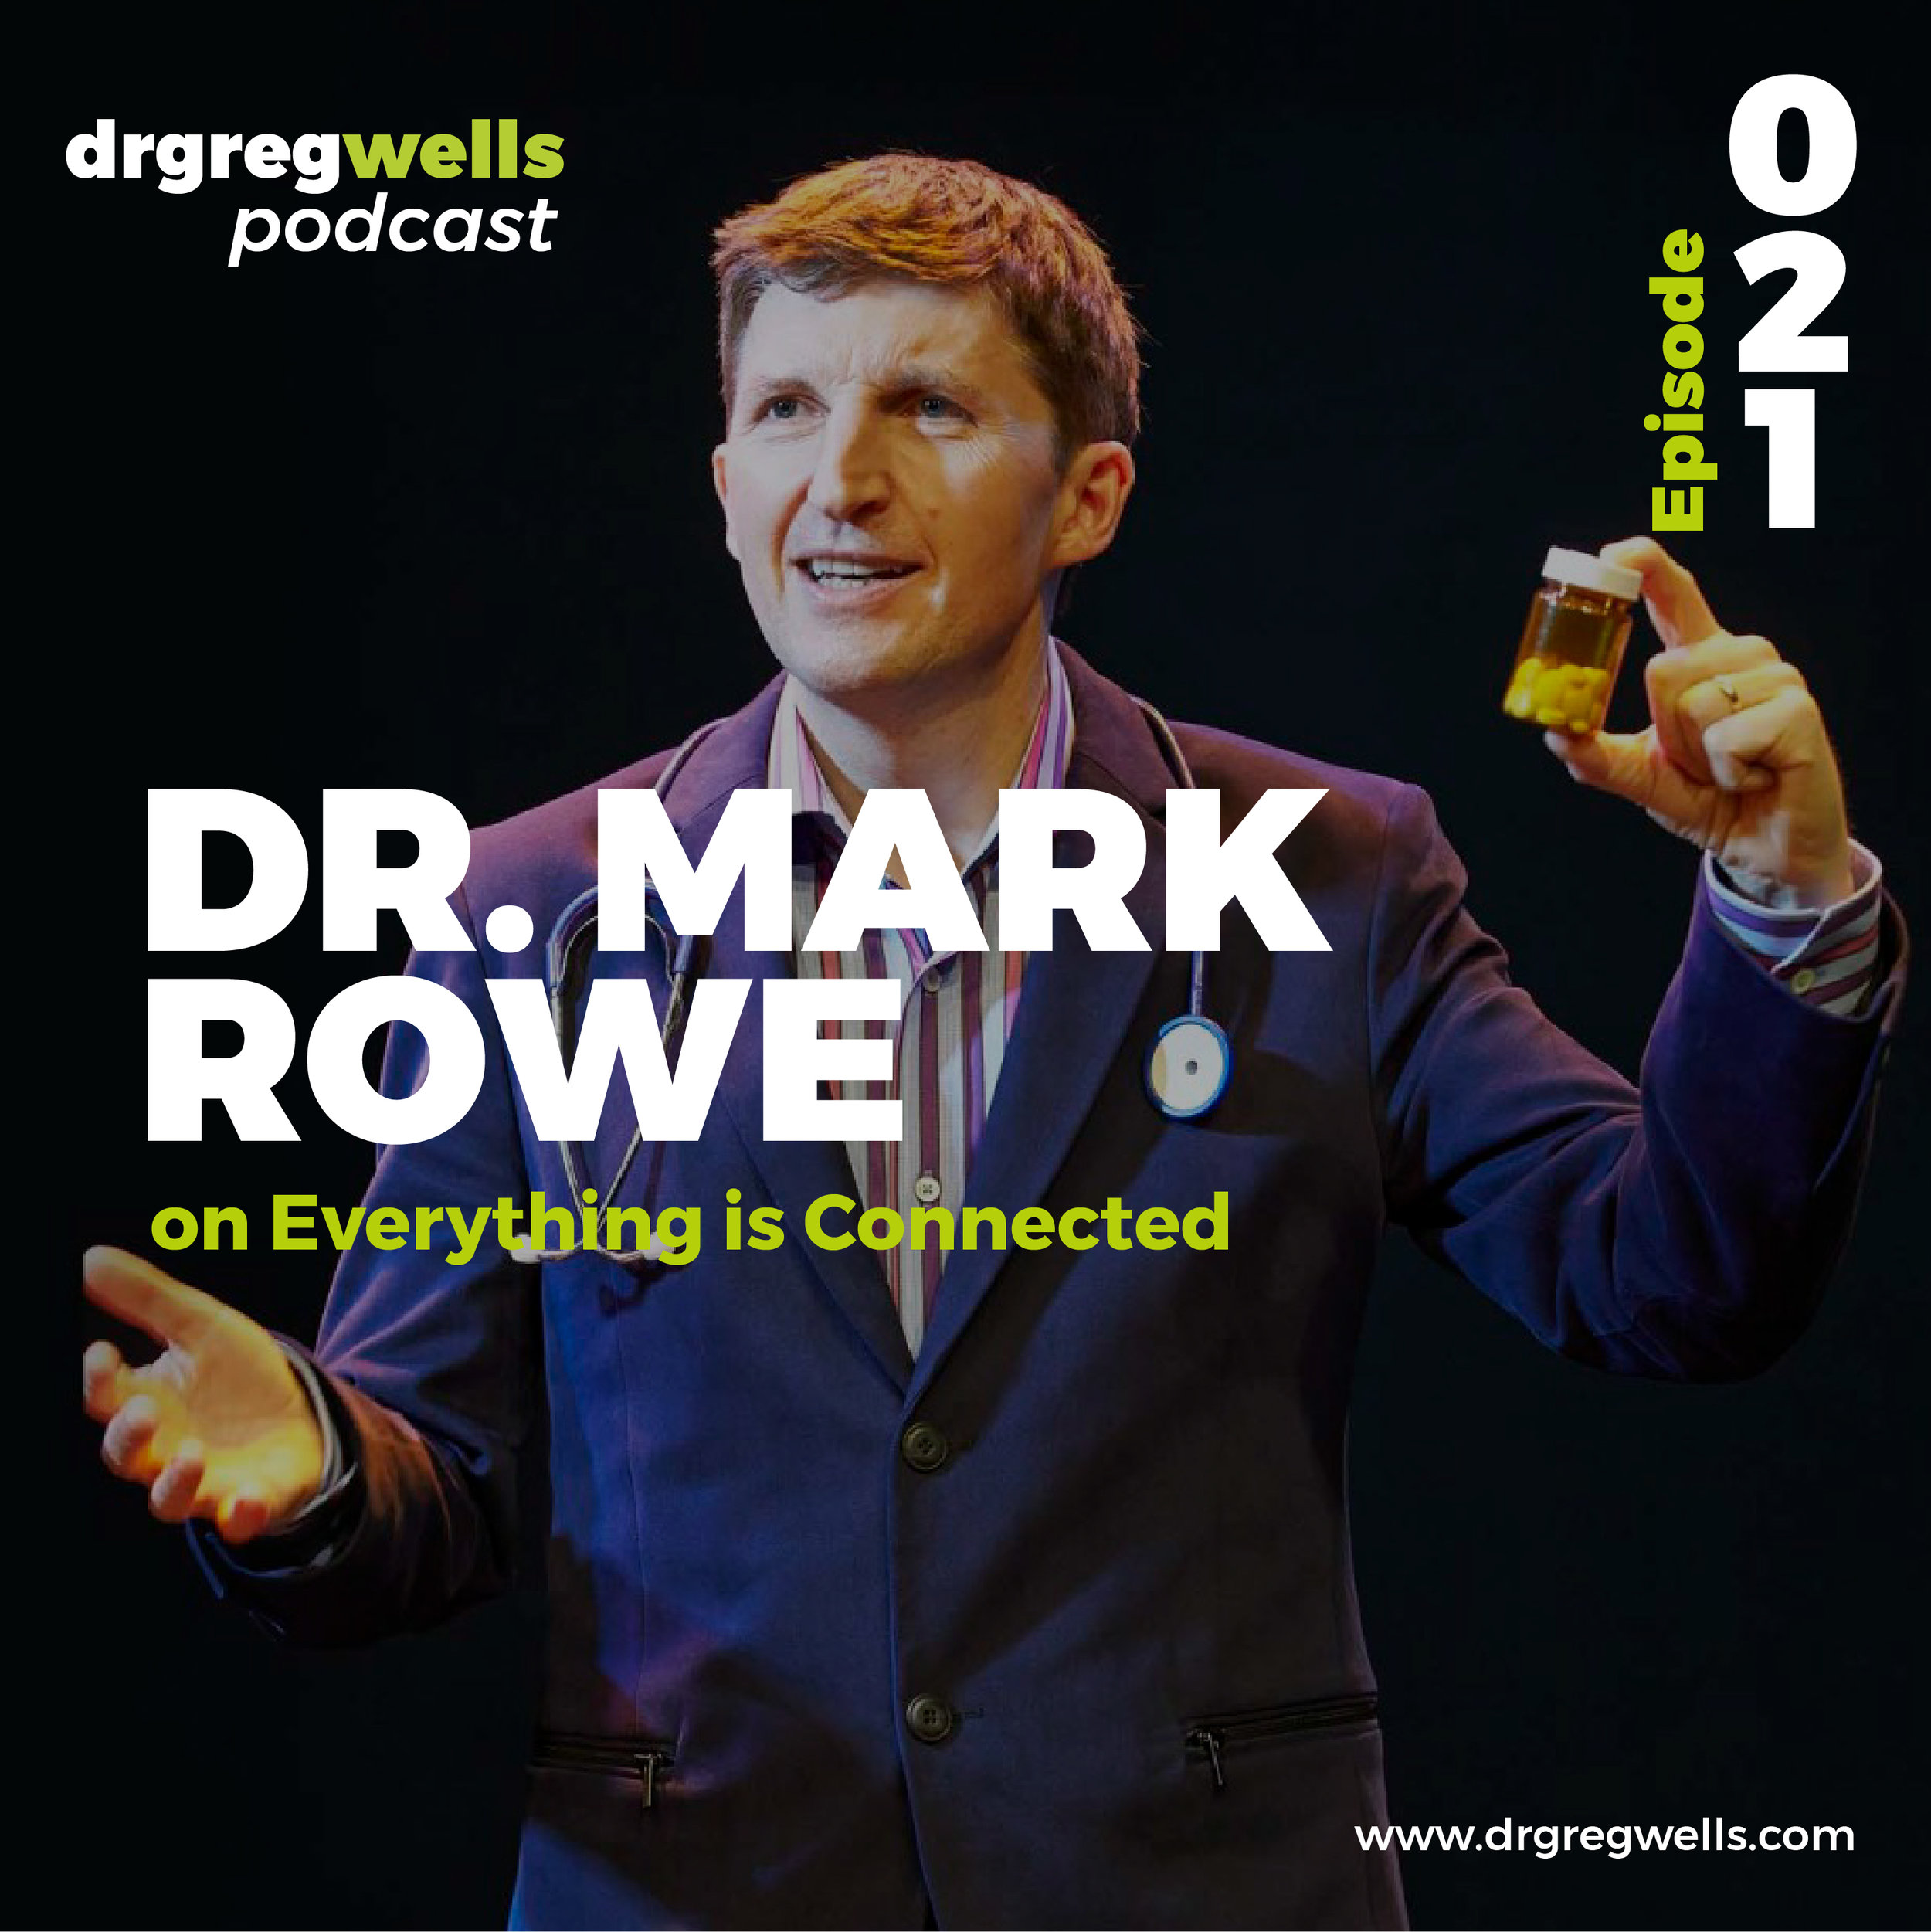 Dr Greg Wells Podcast Guest EP 1 - 32-21.jpg